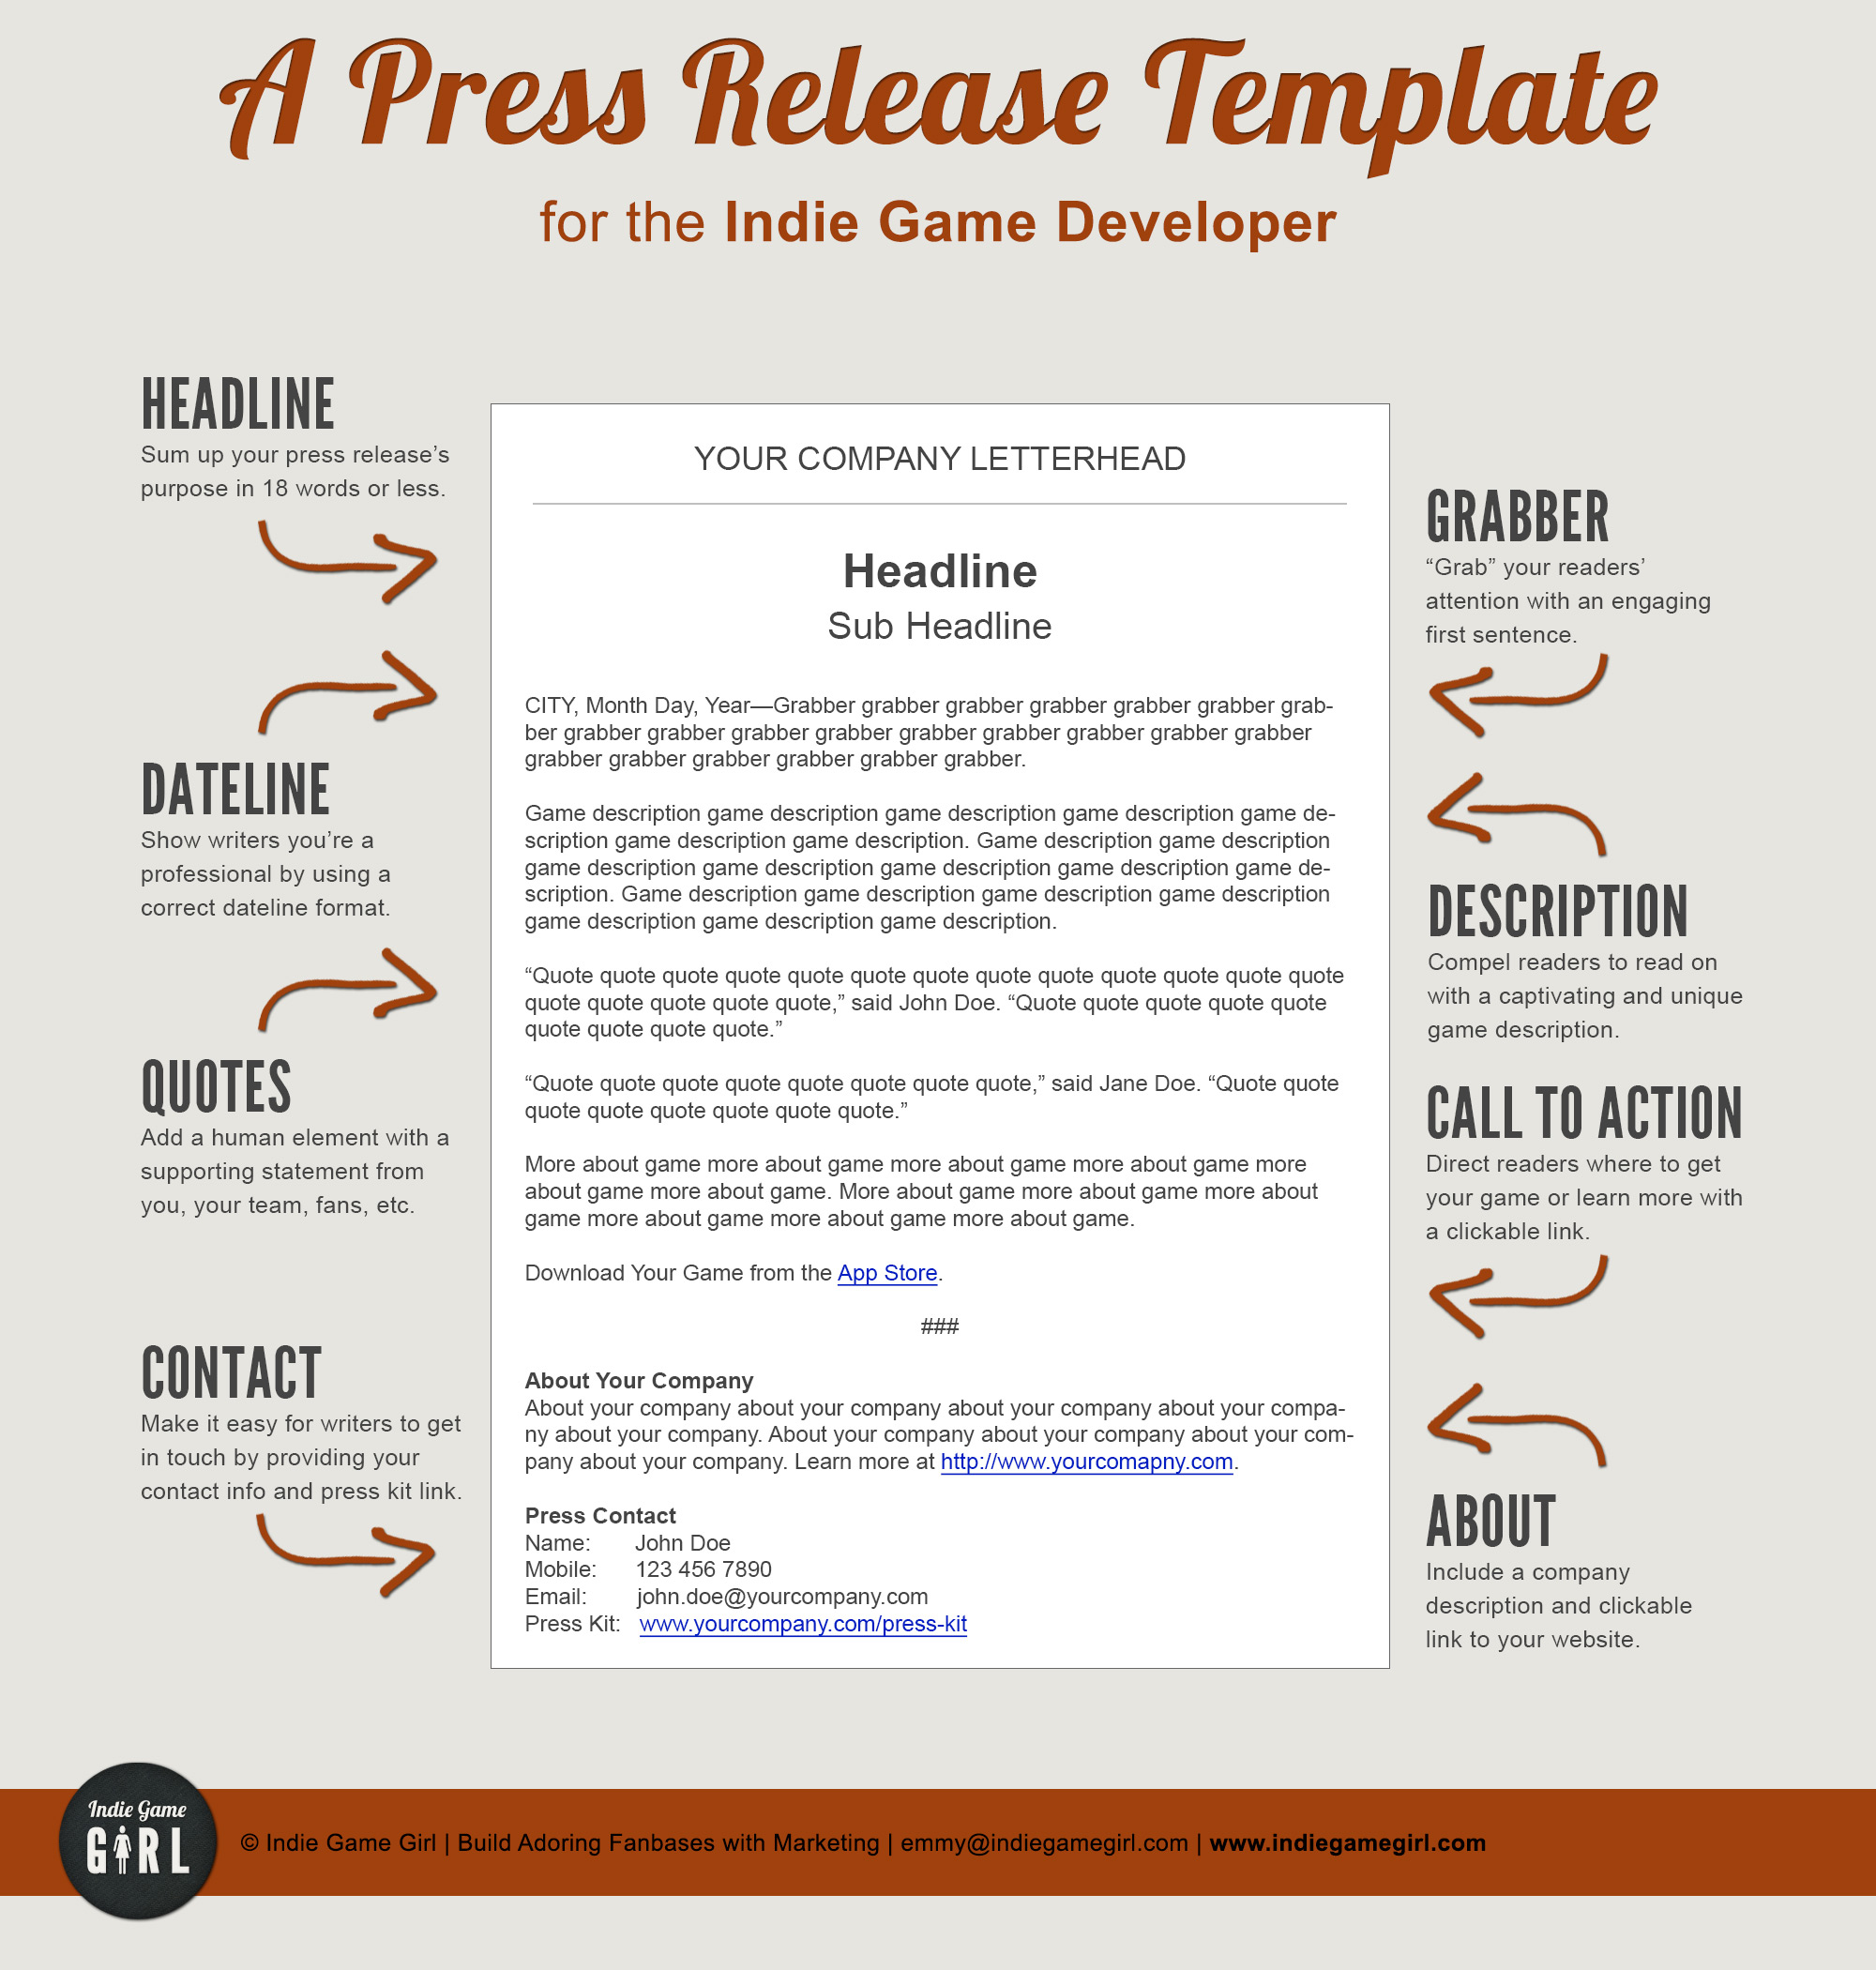 press release brief template - a press release template perfect for the indie game developer